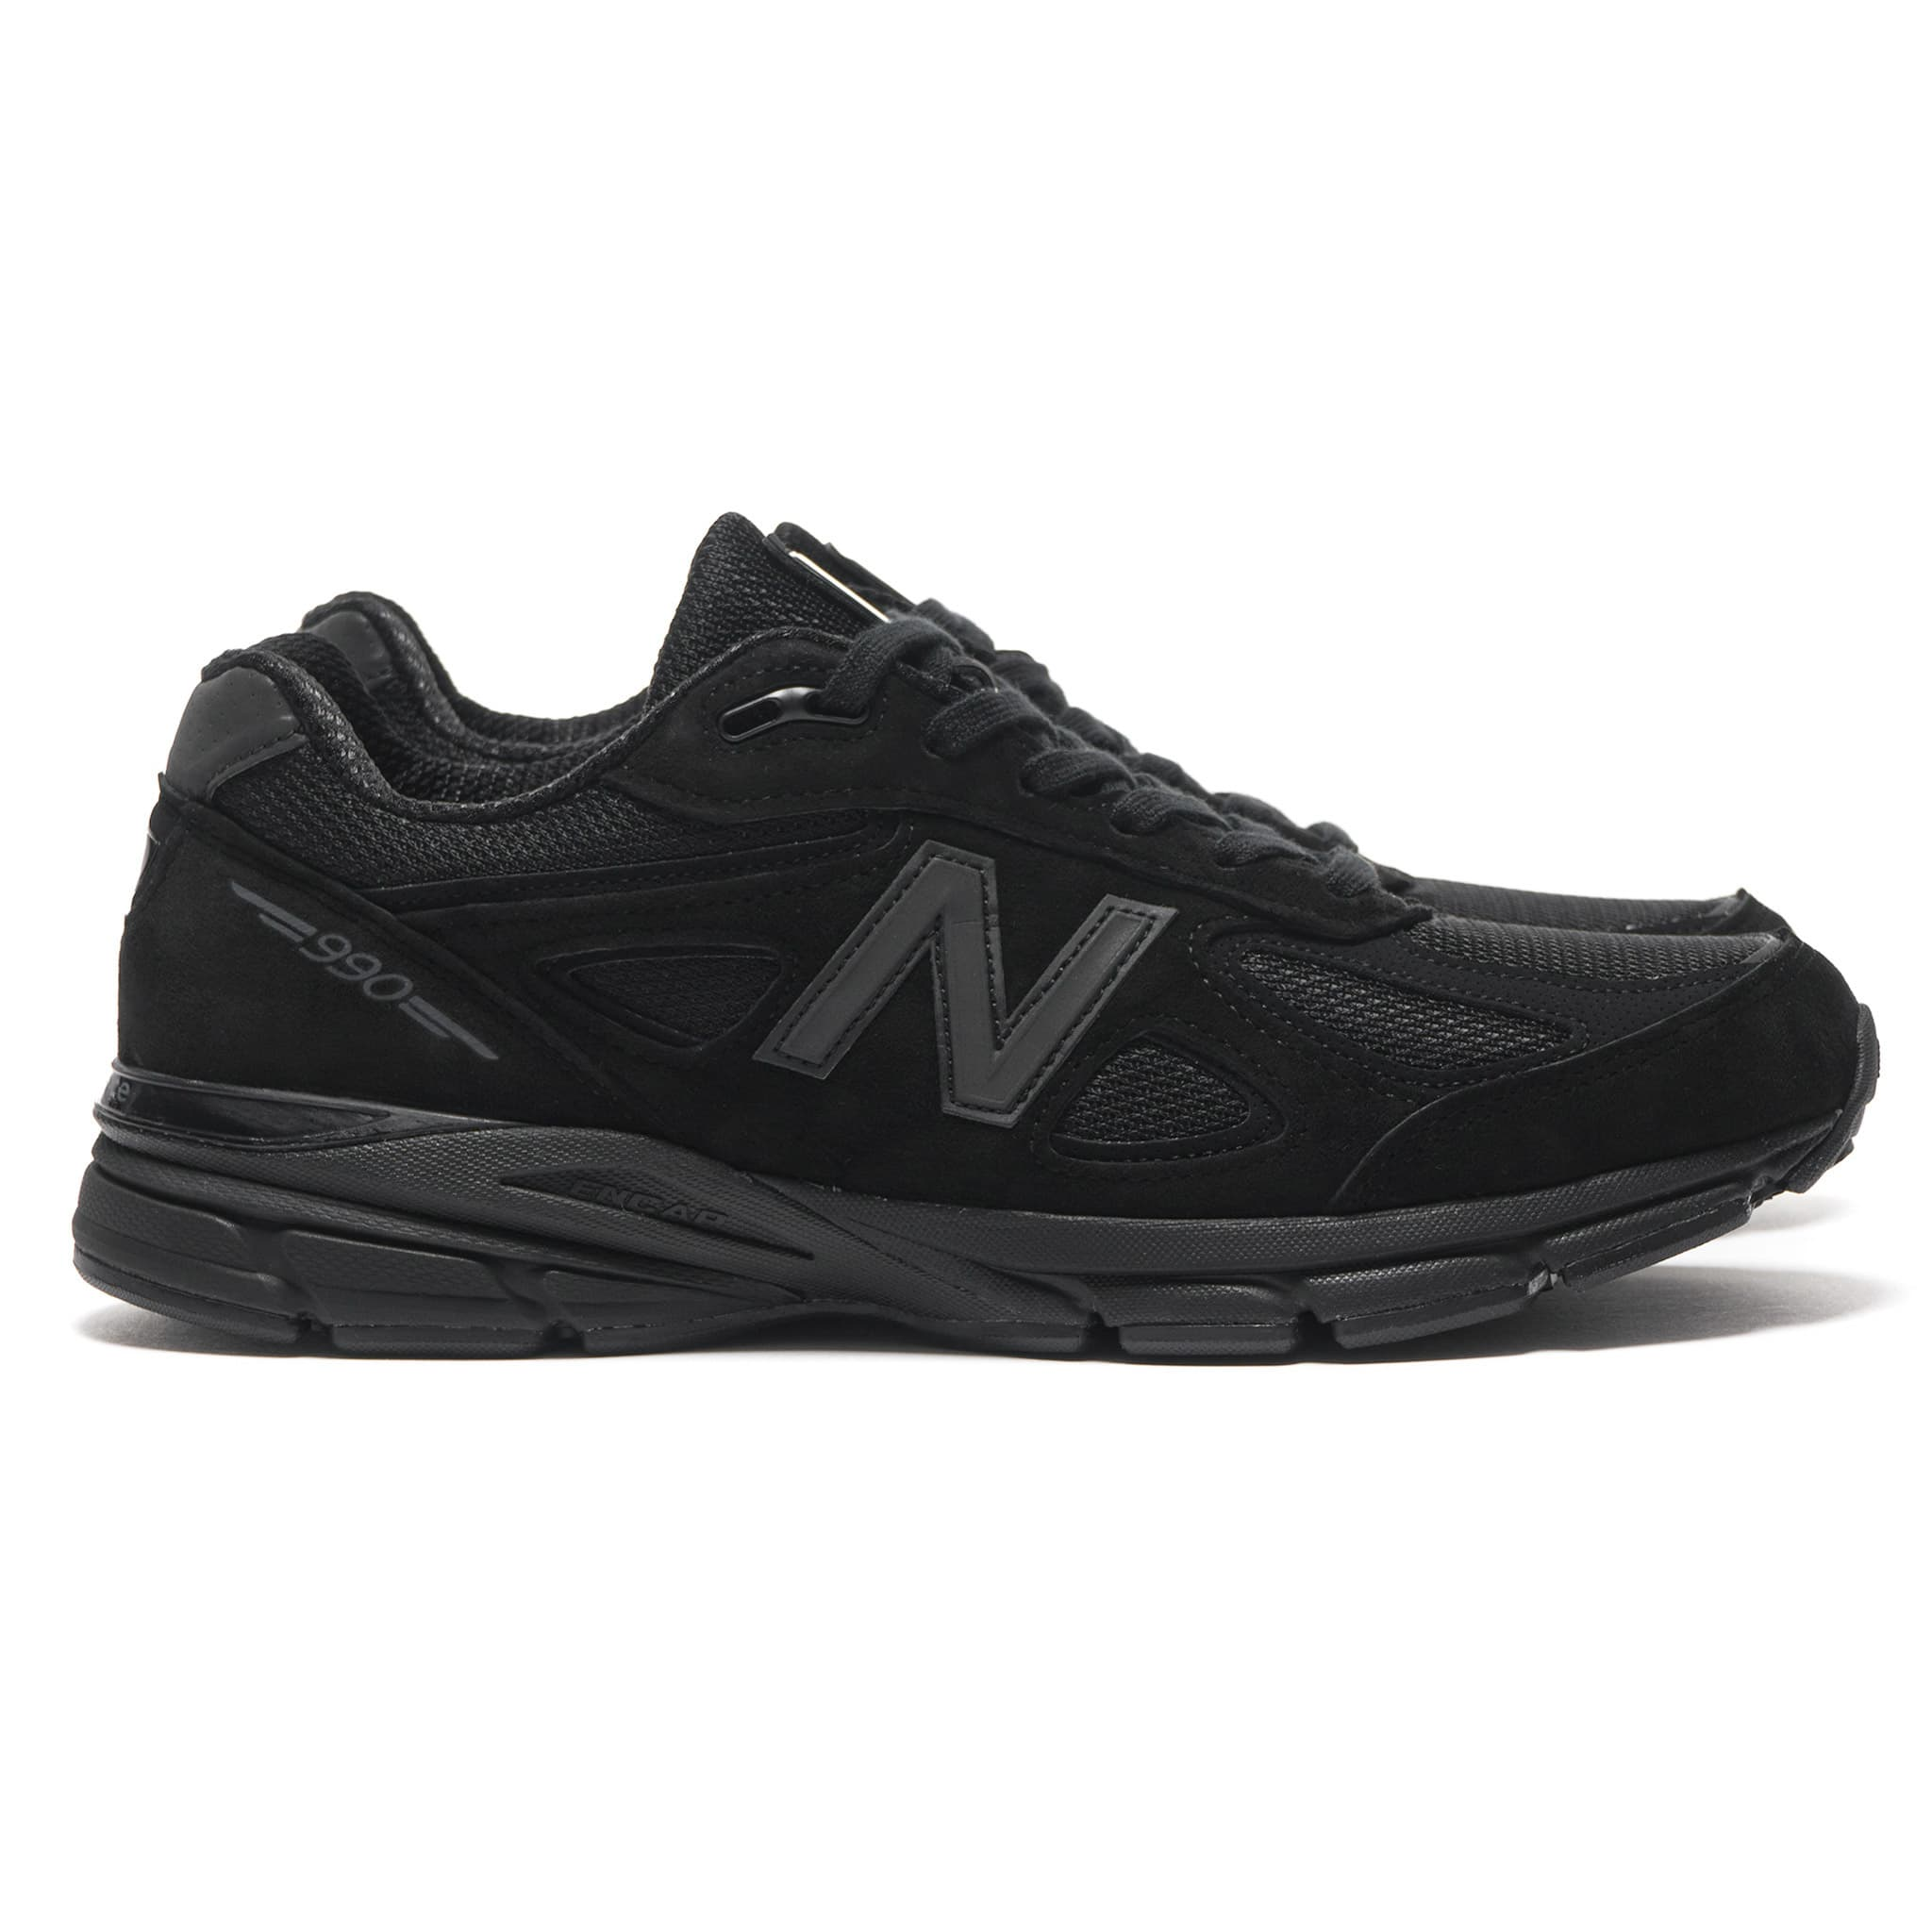 low priced 2c277 74254 After decades as one of New Balance s most iconic running silhouettes, and  a favourite of fashion industry insiders, the 990 has recently seen more ...